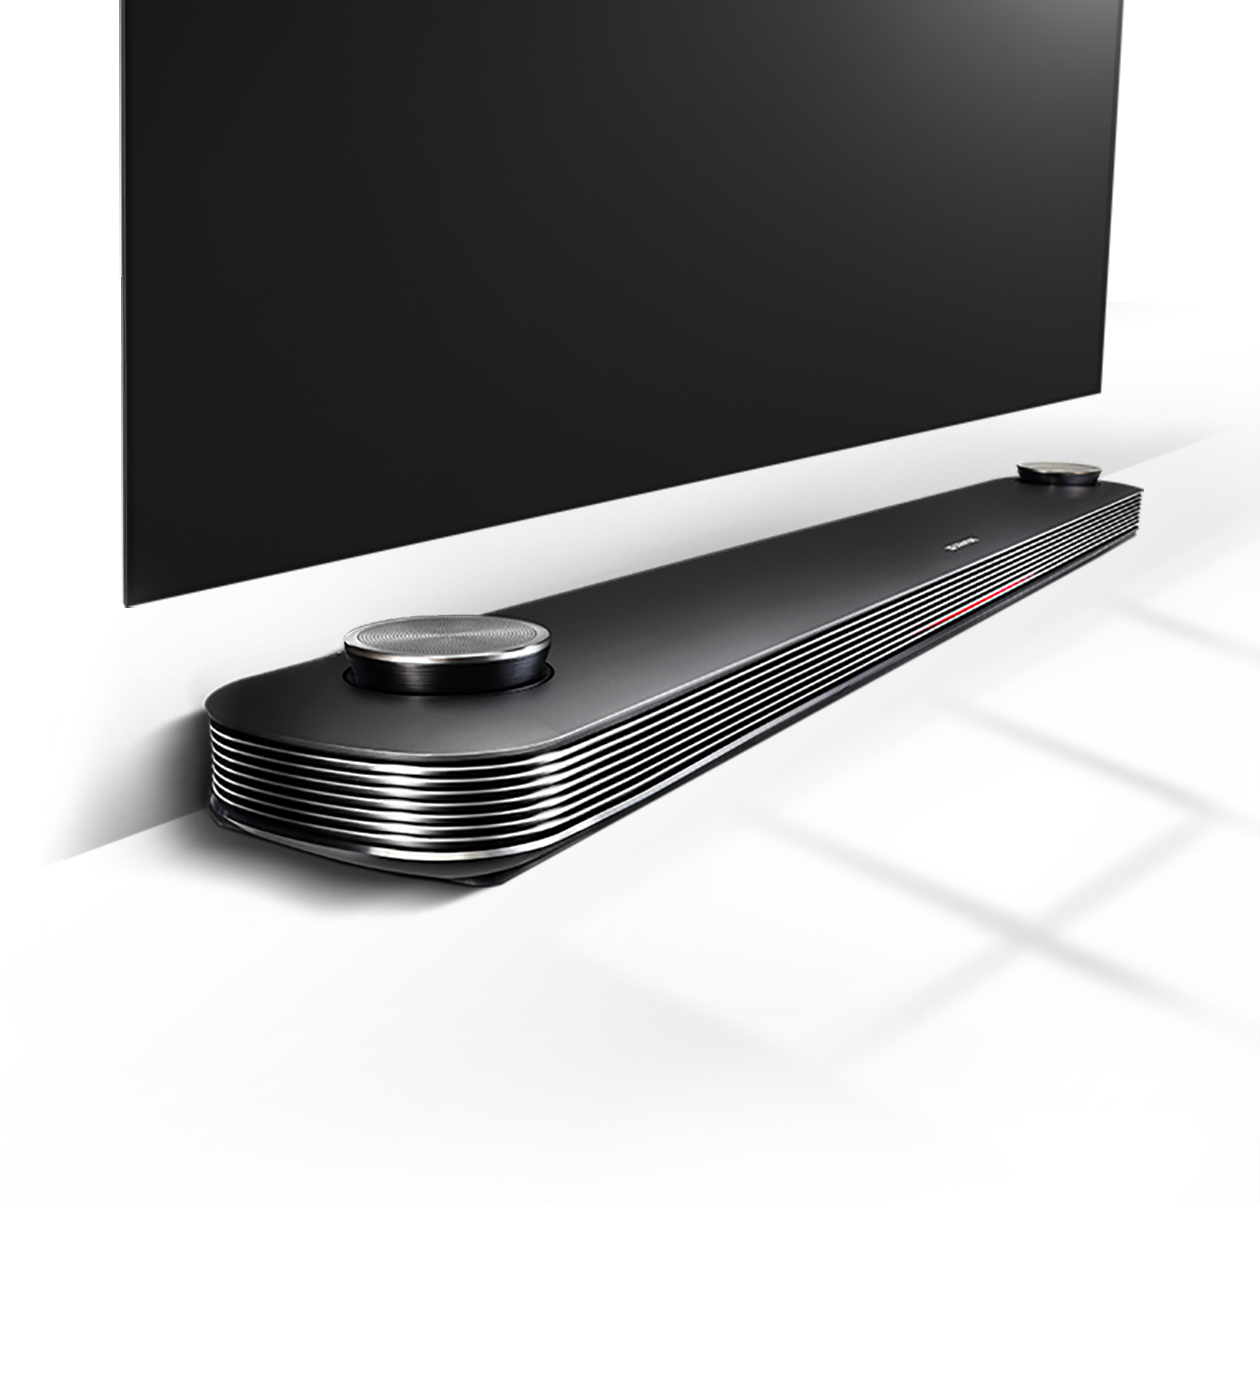 Soundbar - LG Signature 4K OLED TV